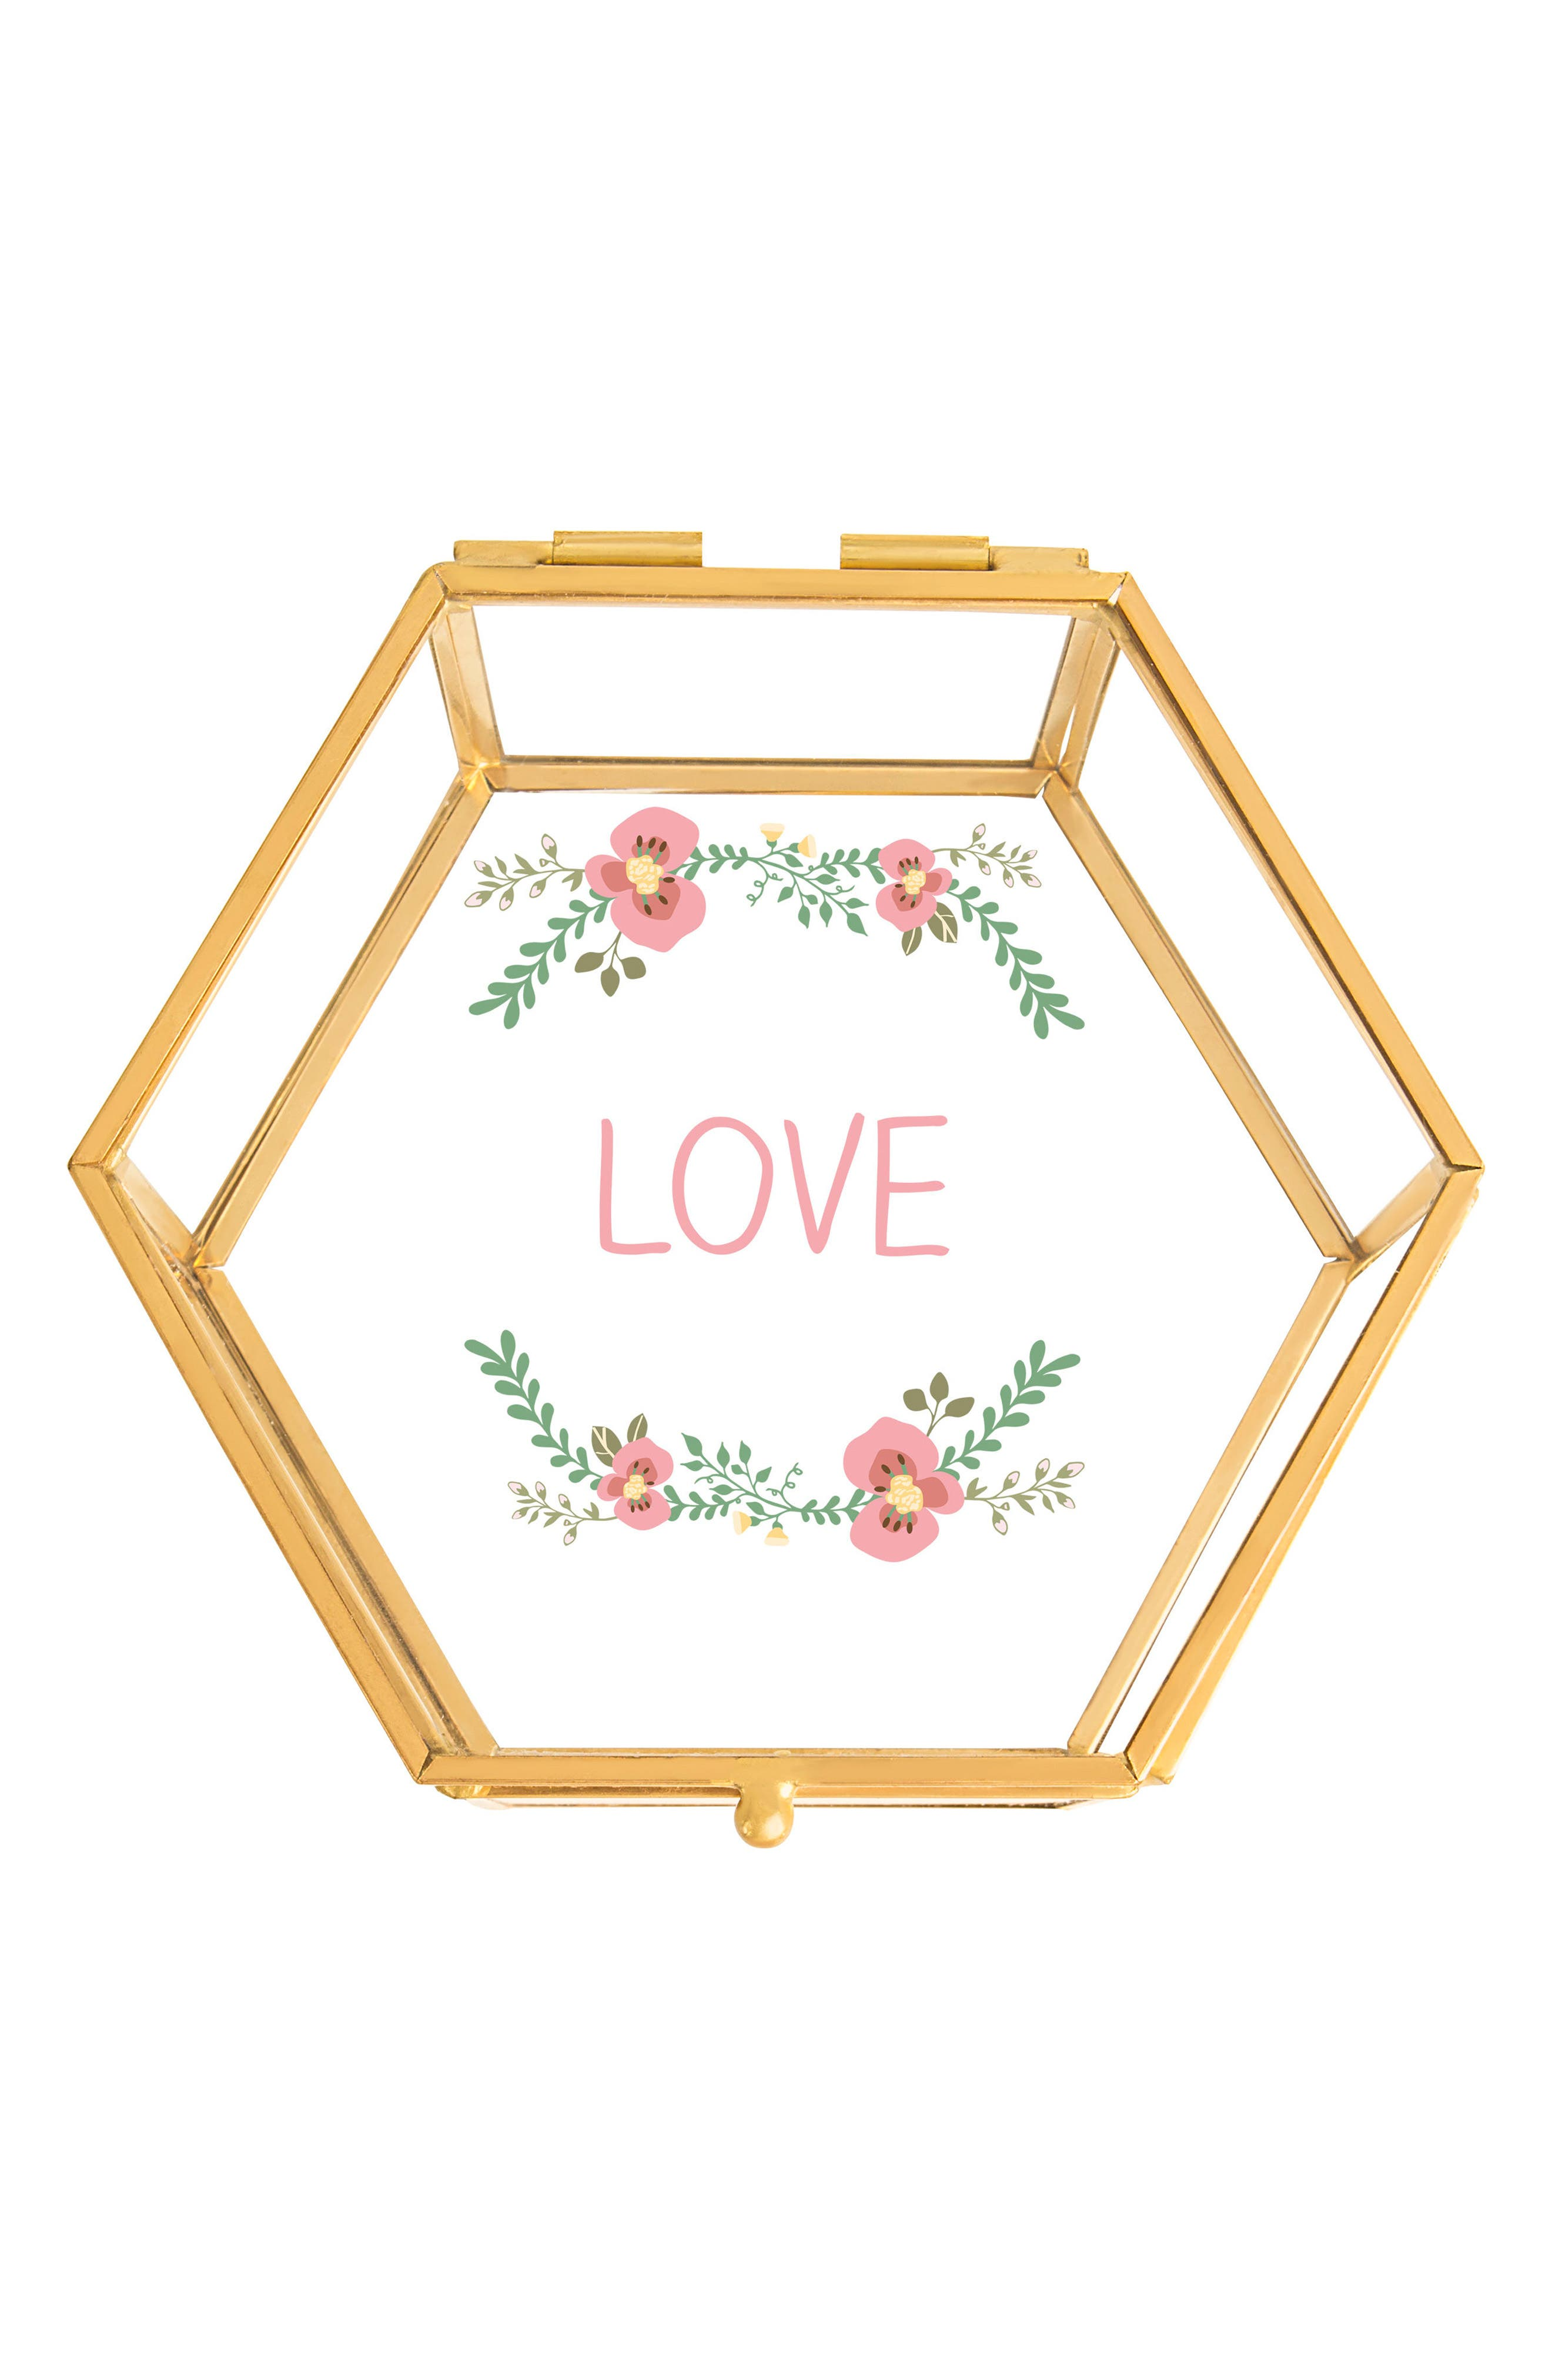 Love Glass Keepsake Box,                             Main thumbnail 1, color,                             710